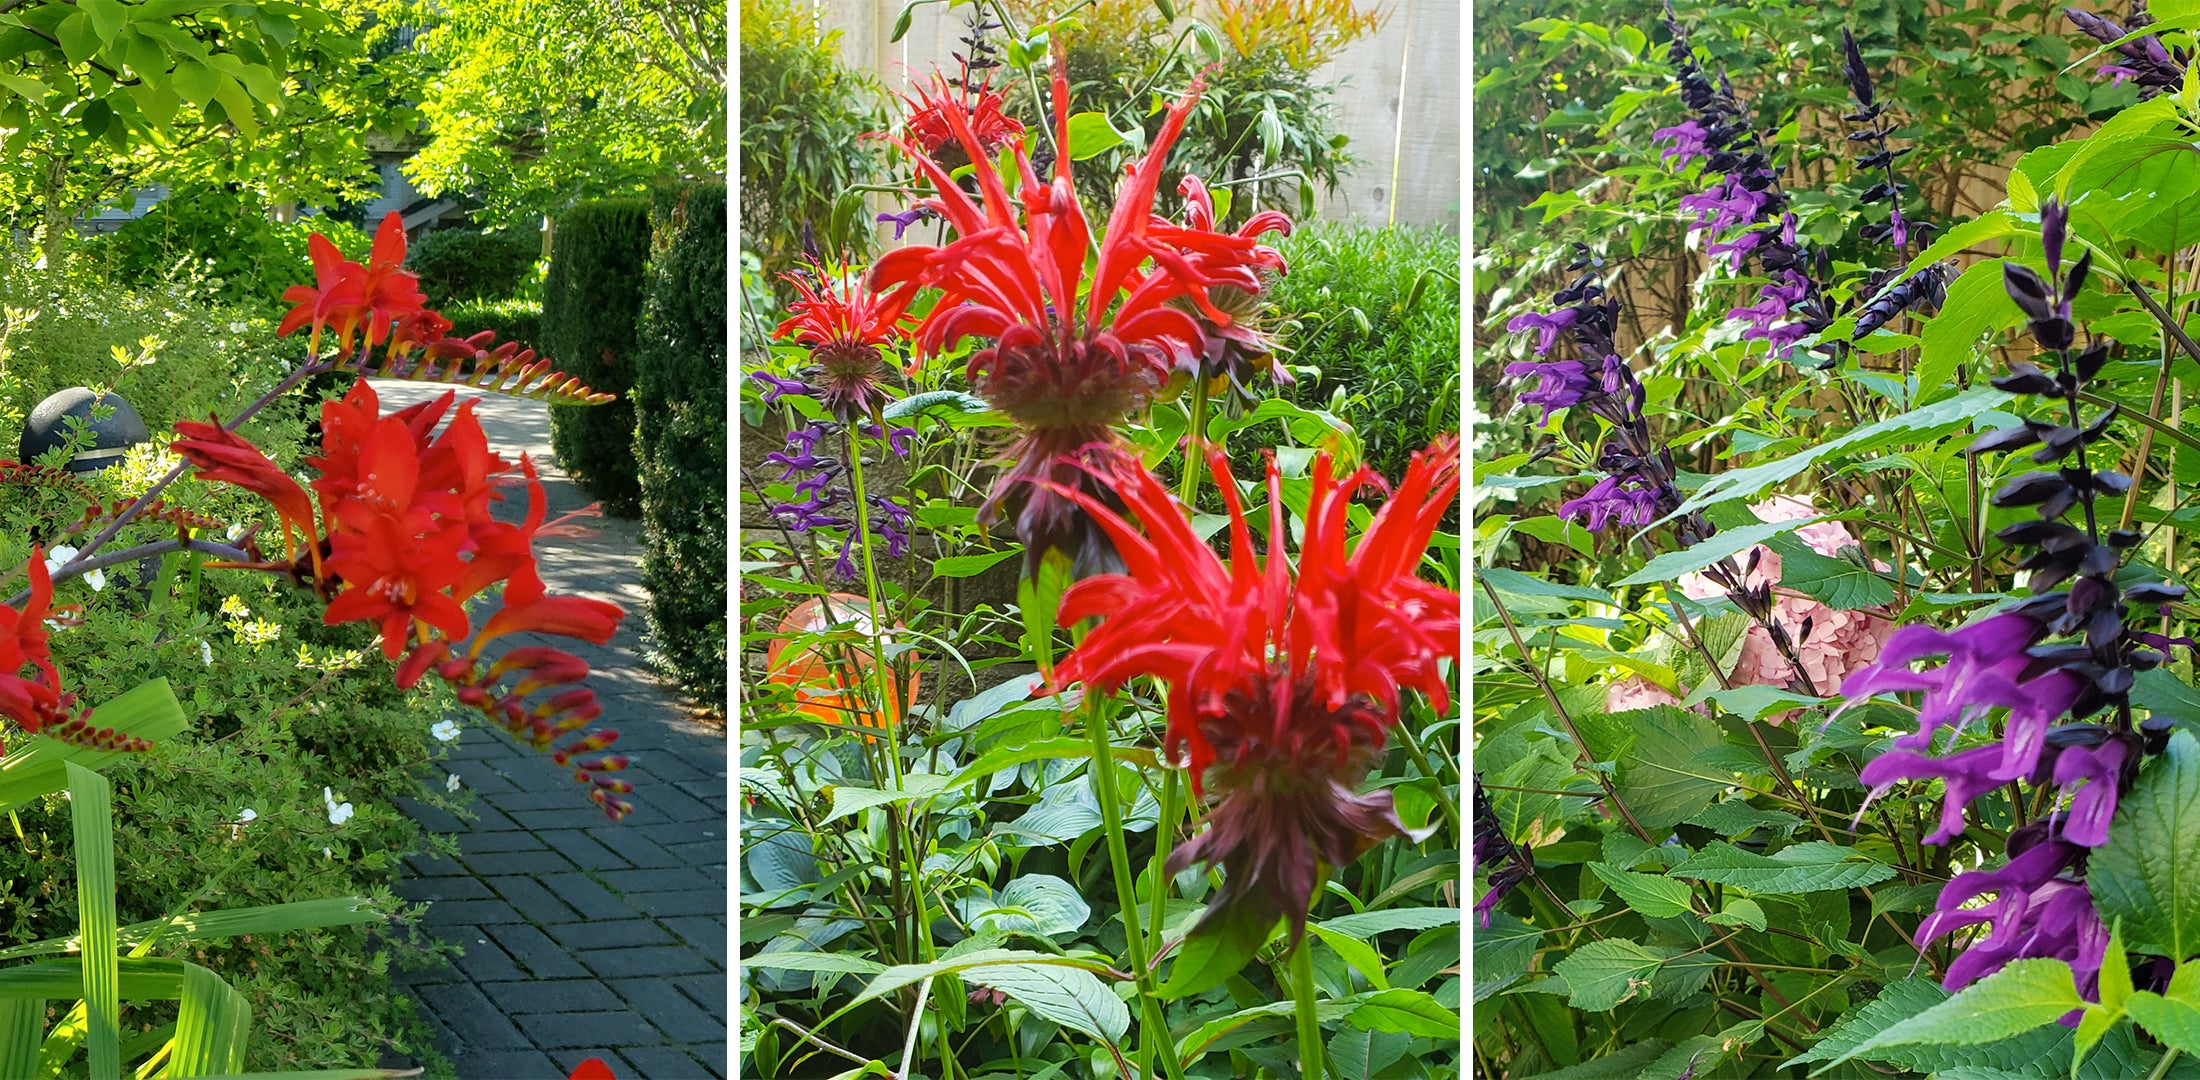 Monarda, Crocosmia, and Salvia Guaranitica